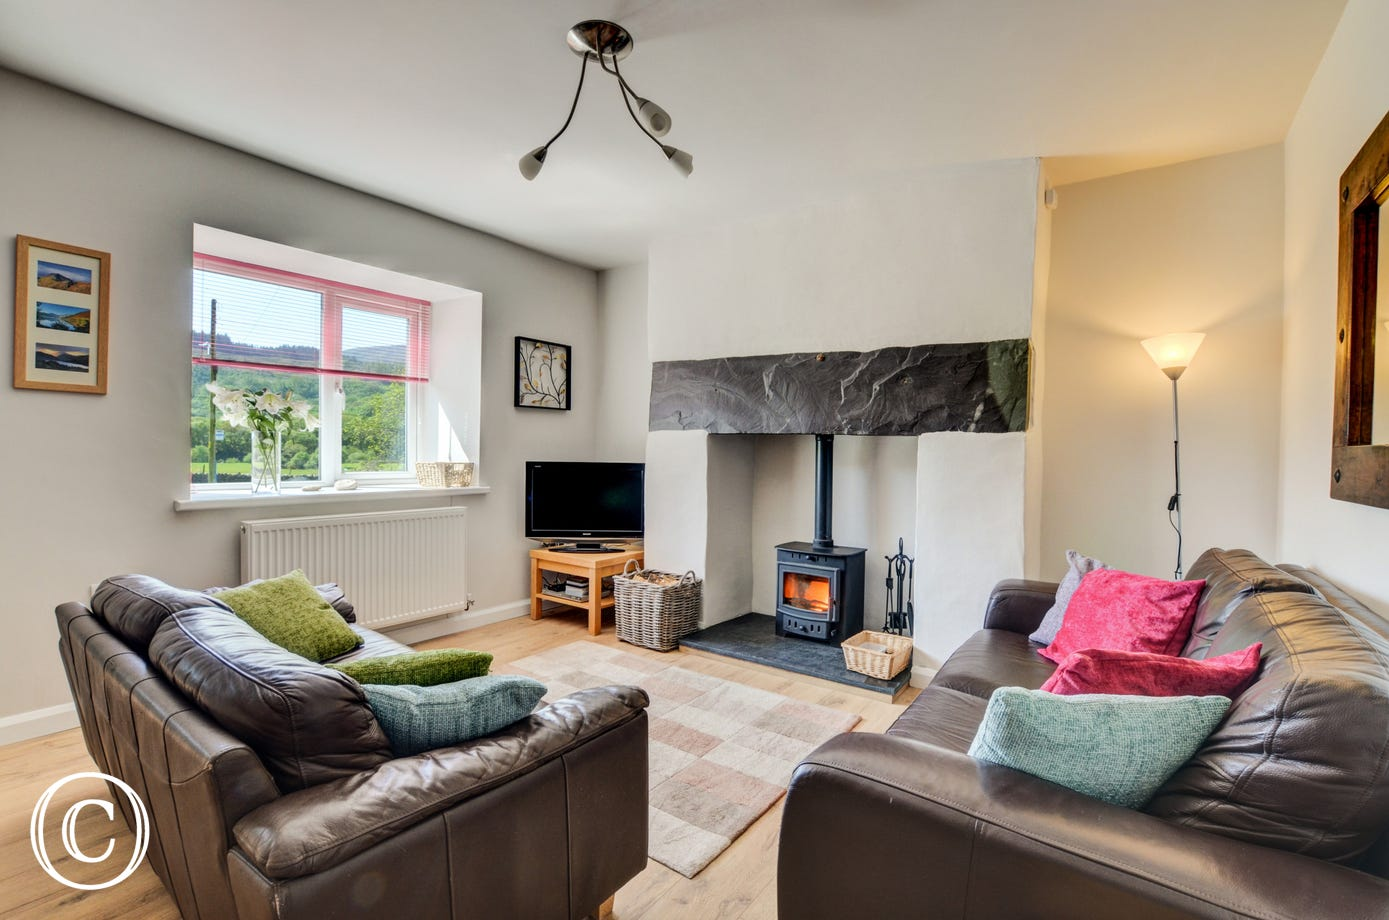 Wonderful wooden flooring in the living room complements the modern furnishings and woodburner